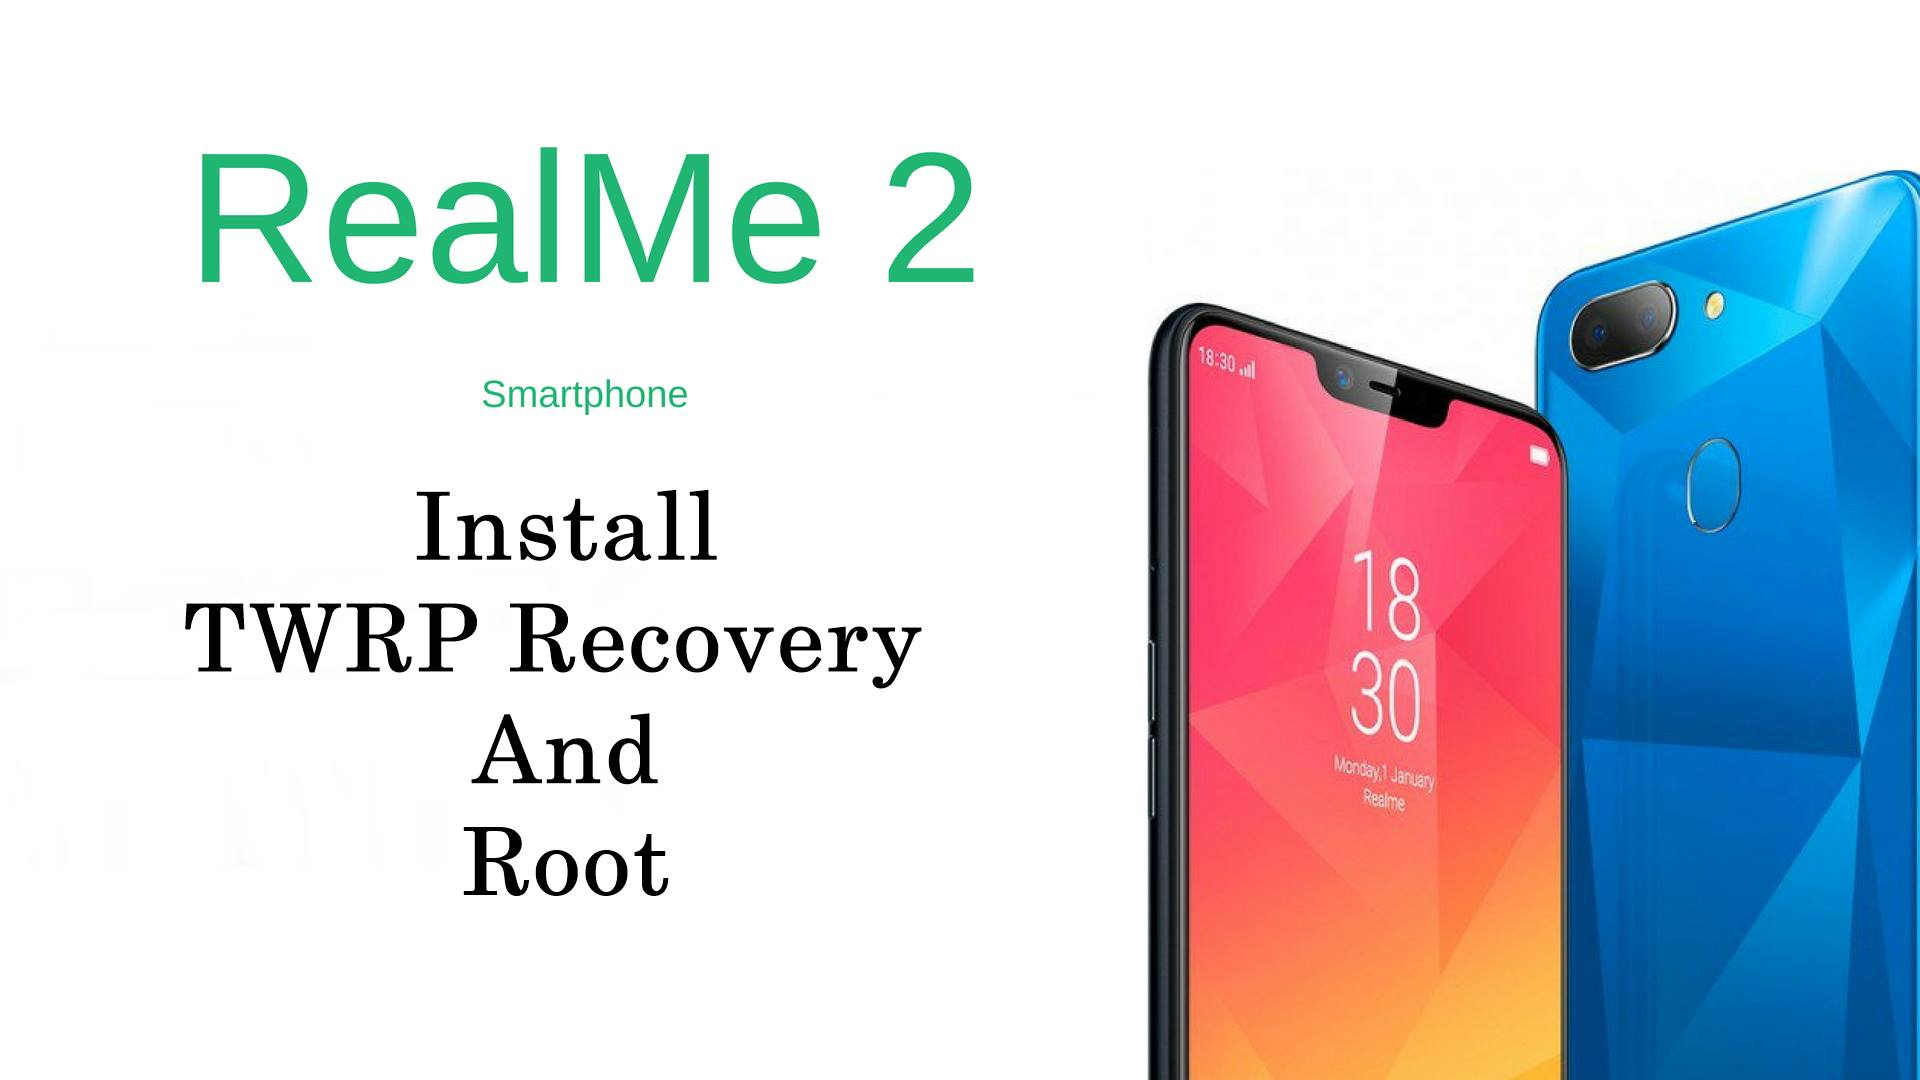 How to Install TWRP Recovery And Root OPPO RealMe 2 - Android Result